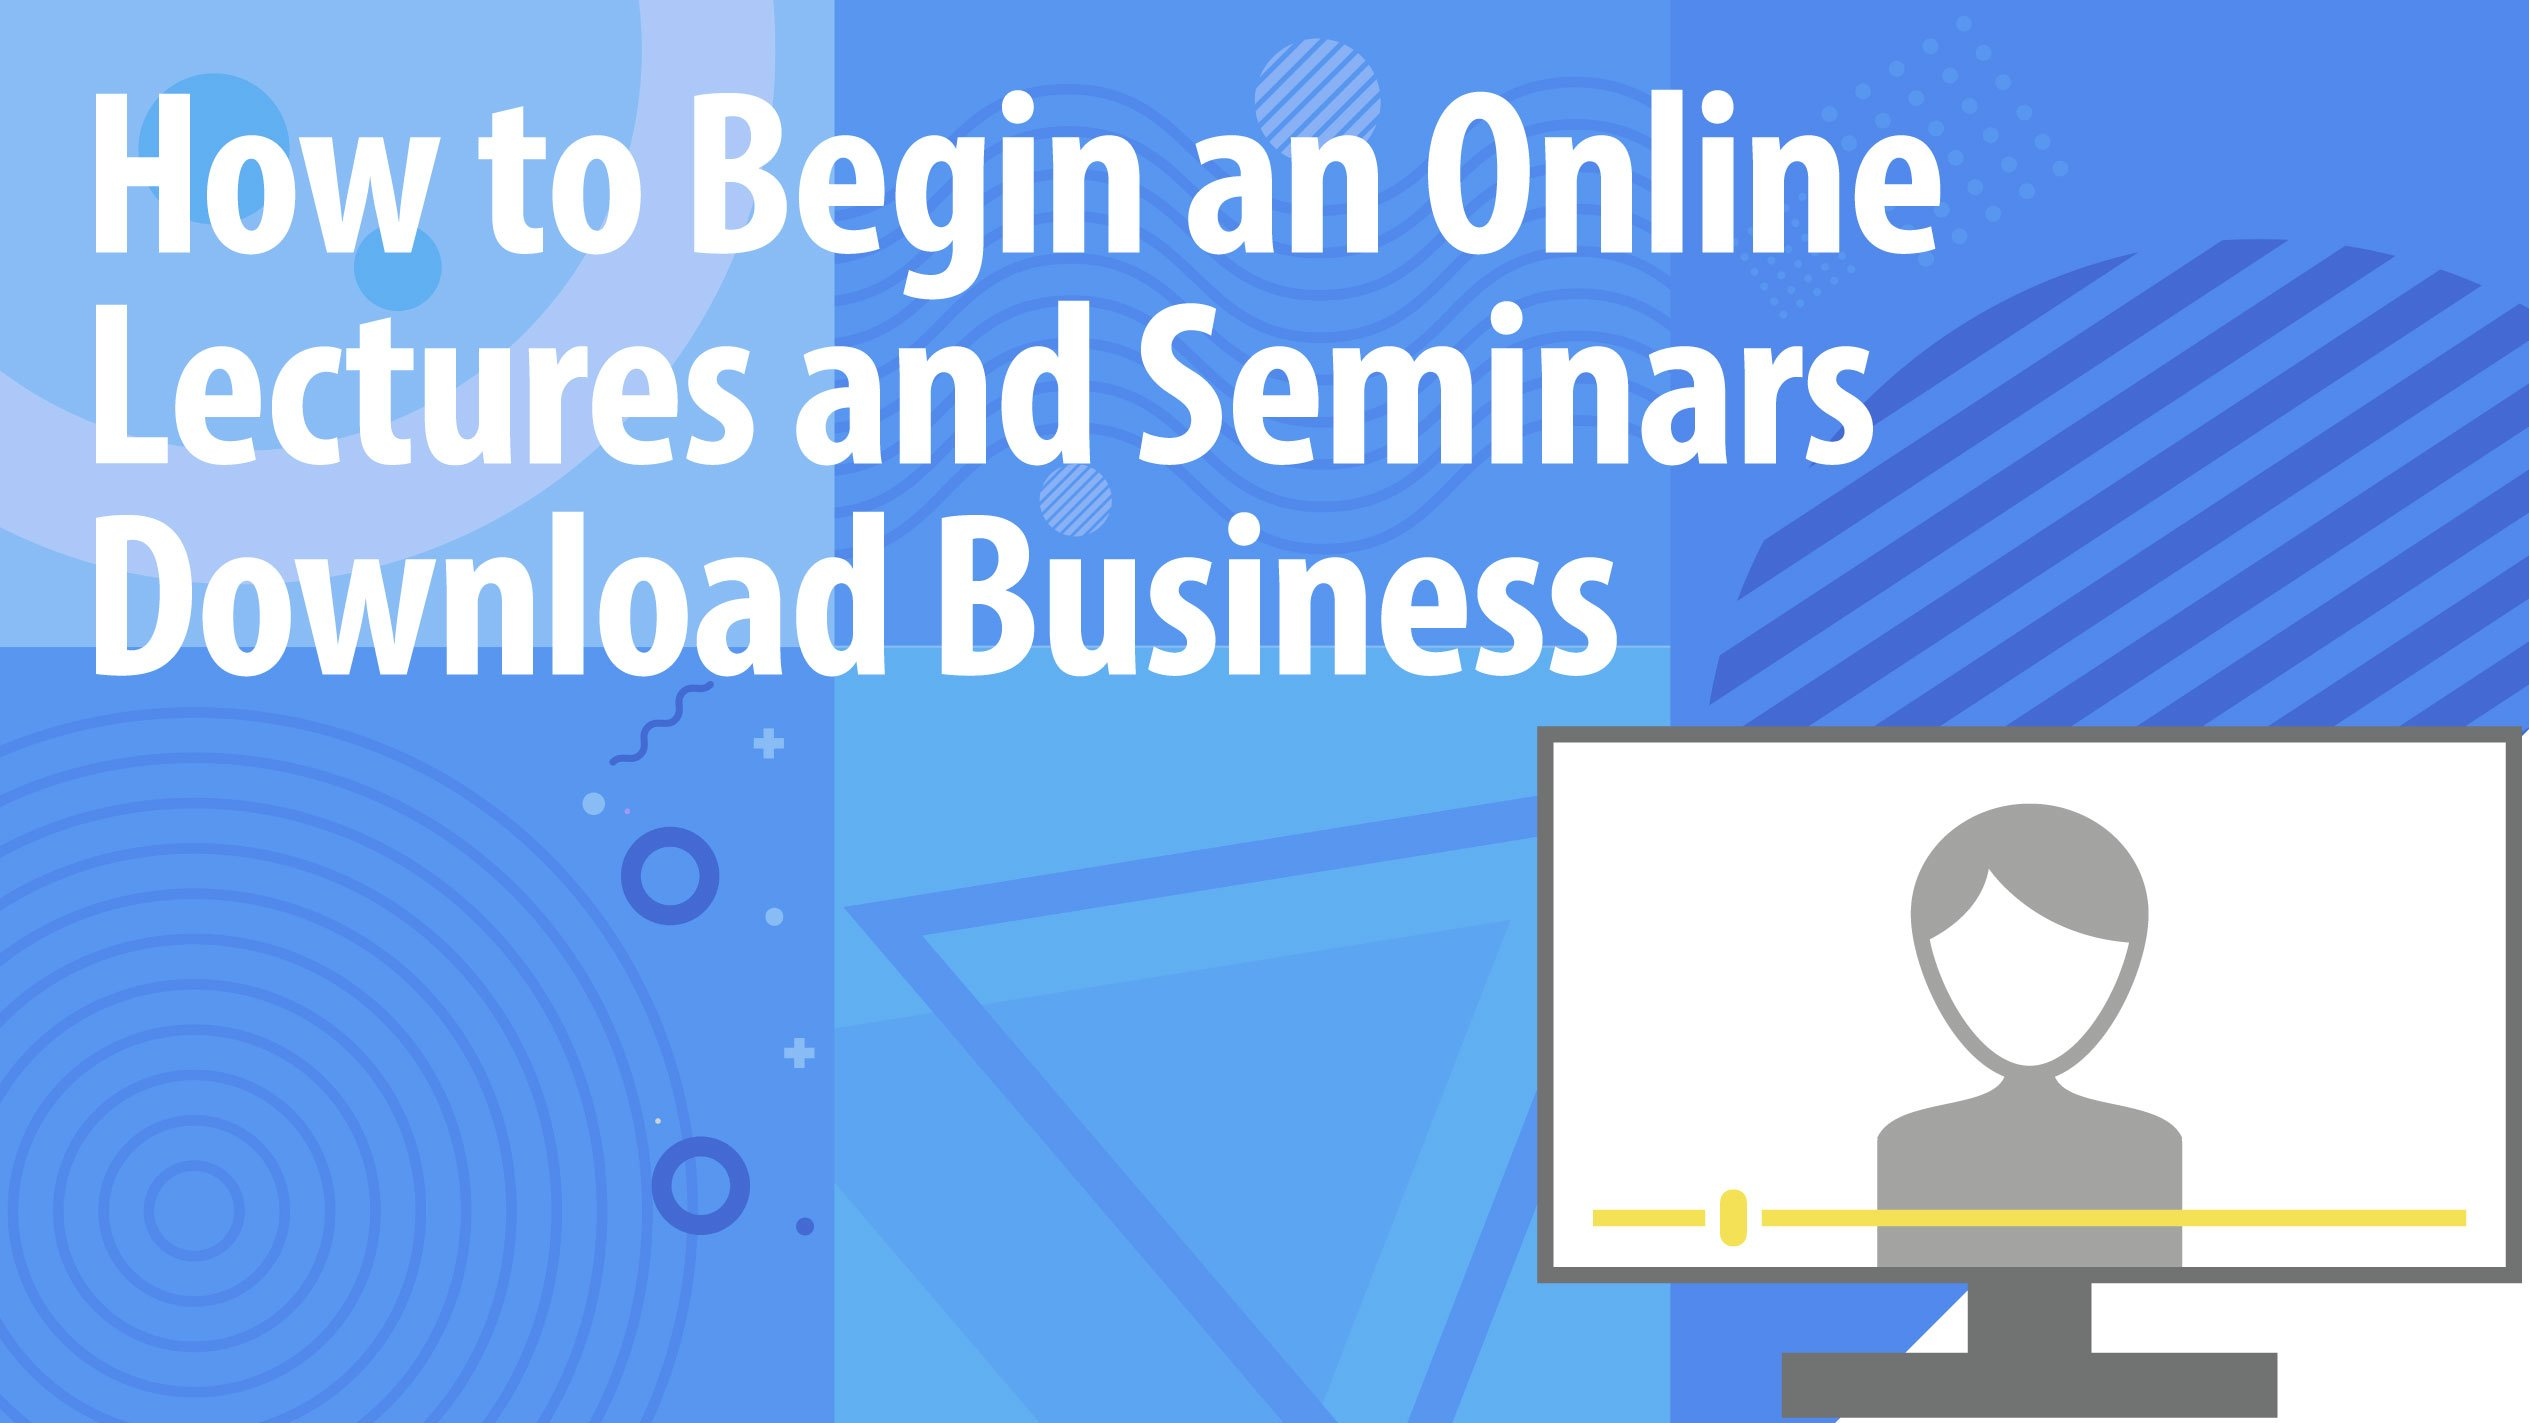 How to Begin an Online Lectures and Seminars Download Business